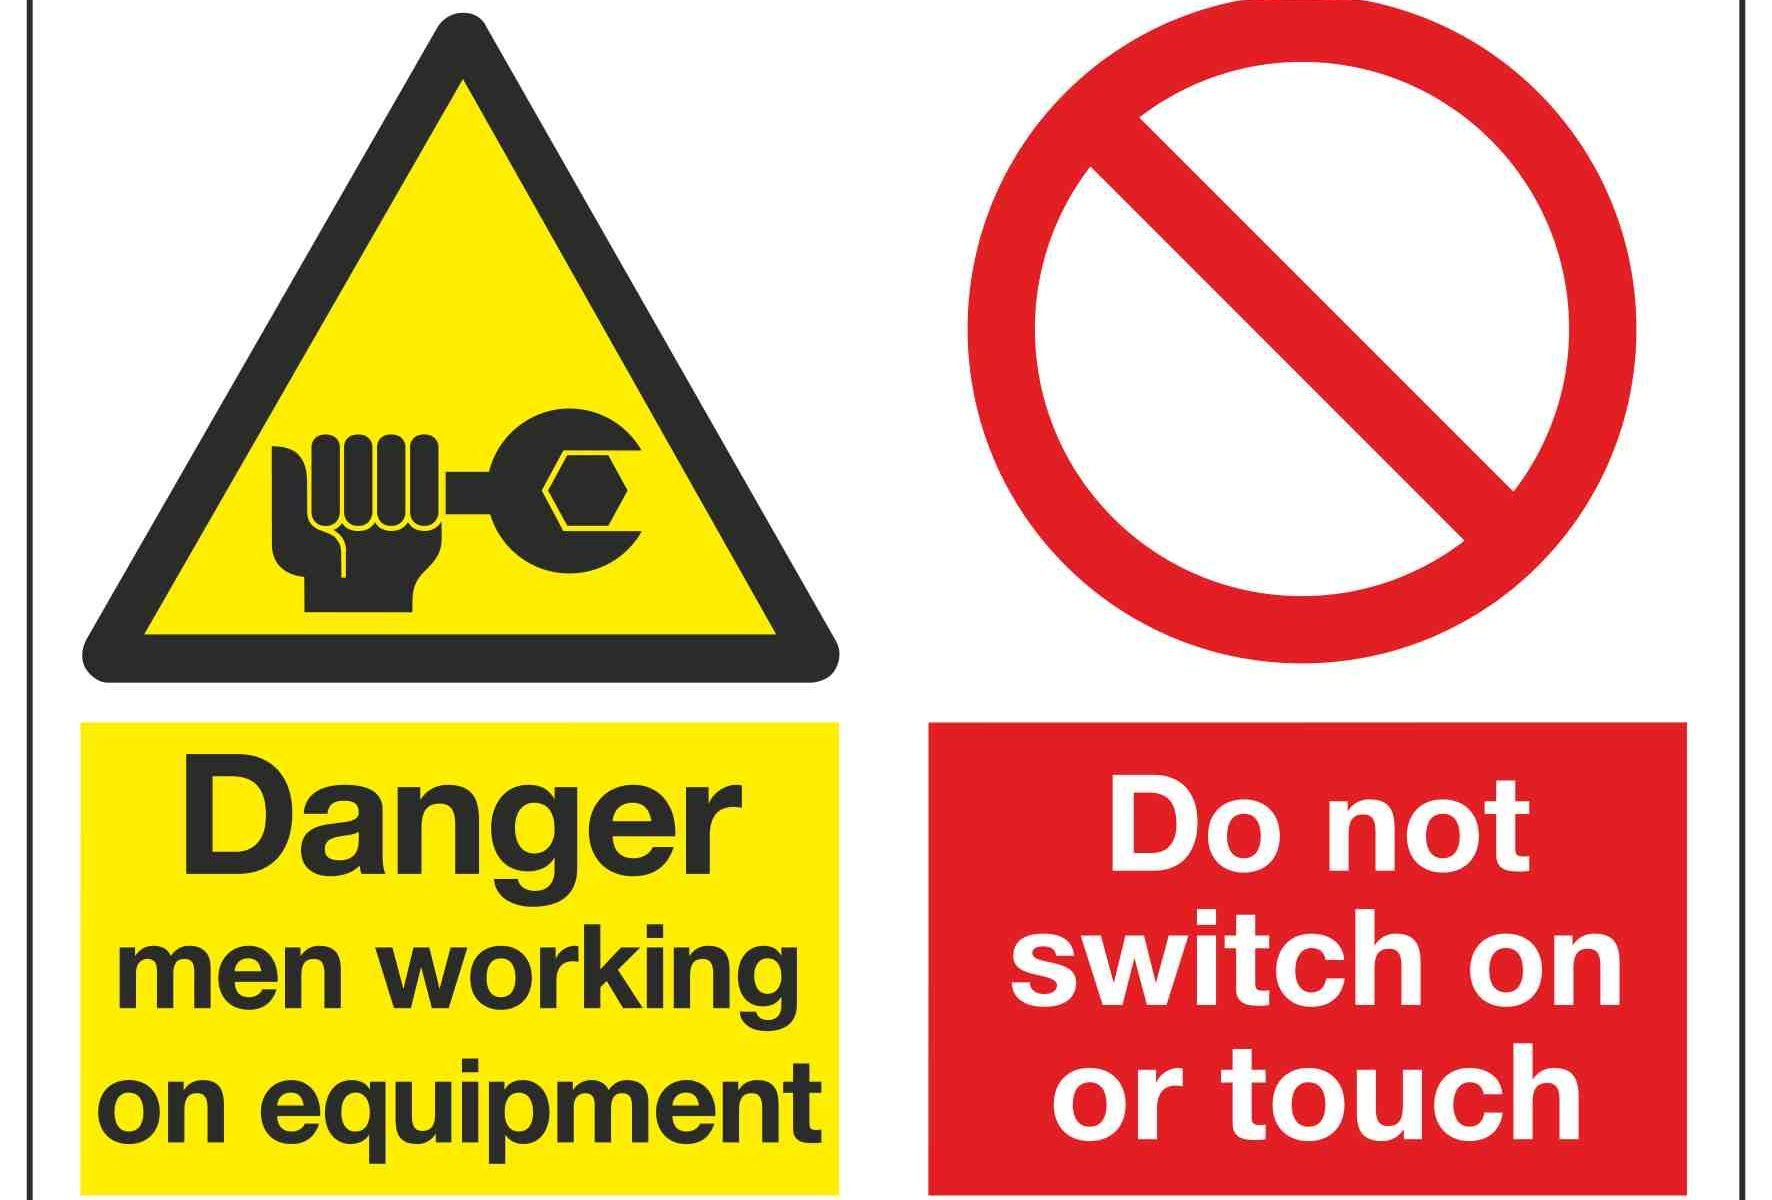 Danger men working on equipment / Do not switch on or touch